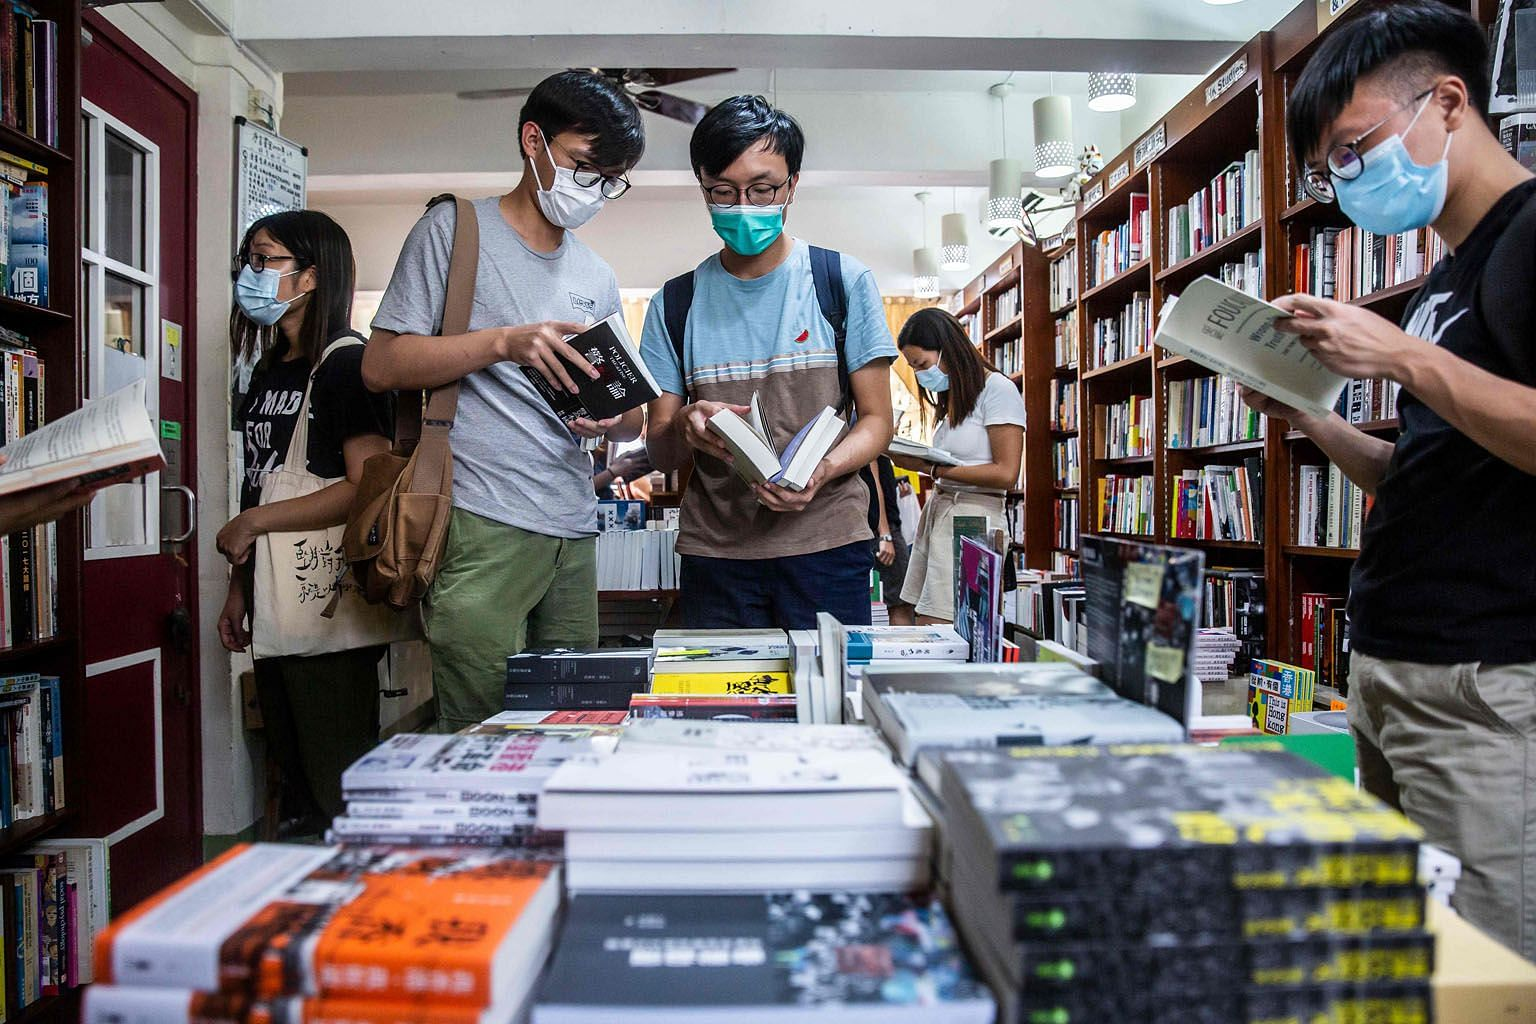 Customers browsing in a bookstore in Hong Kong last month. The city has long been a refuge for intellectuals, but that status is at risk of crumbling as Beijing's security legislation sends fresh jitters through a publishing industry already wary of